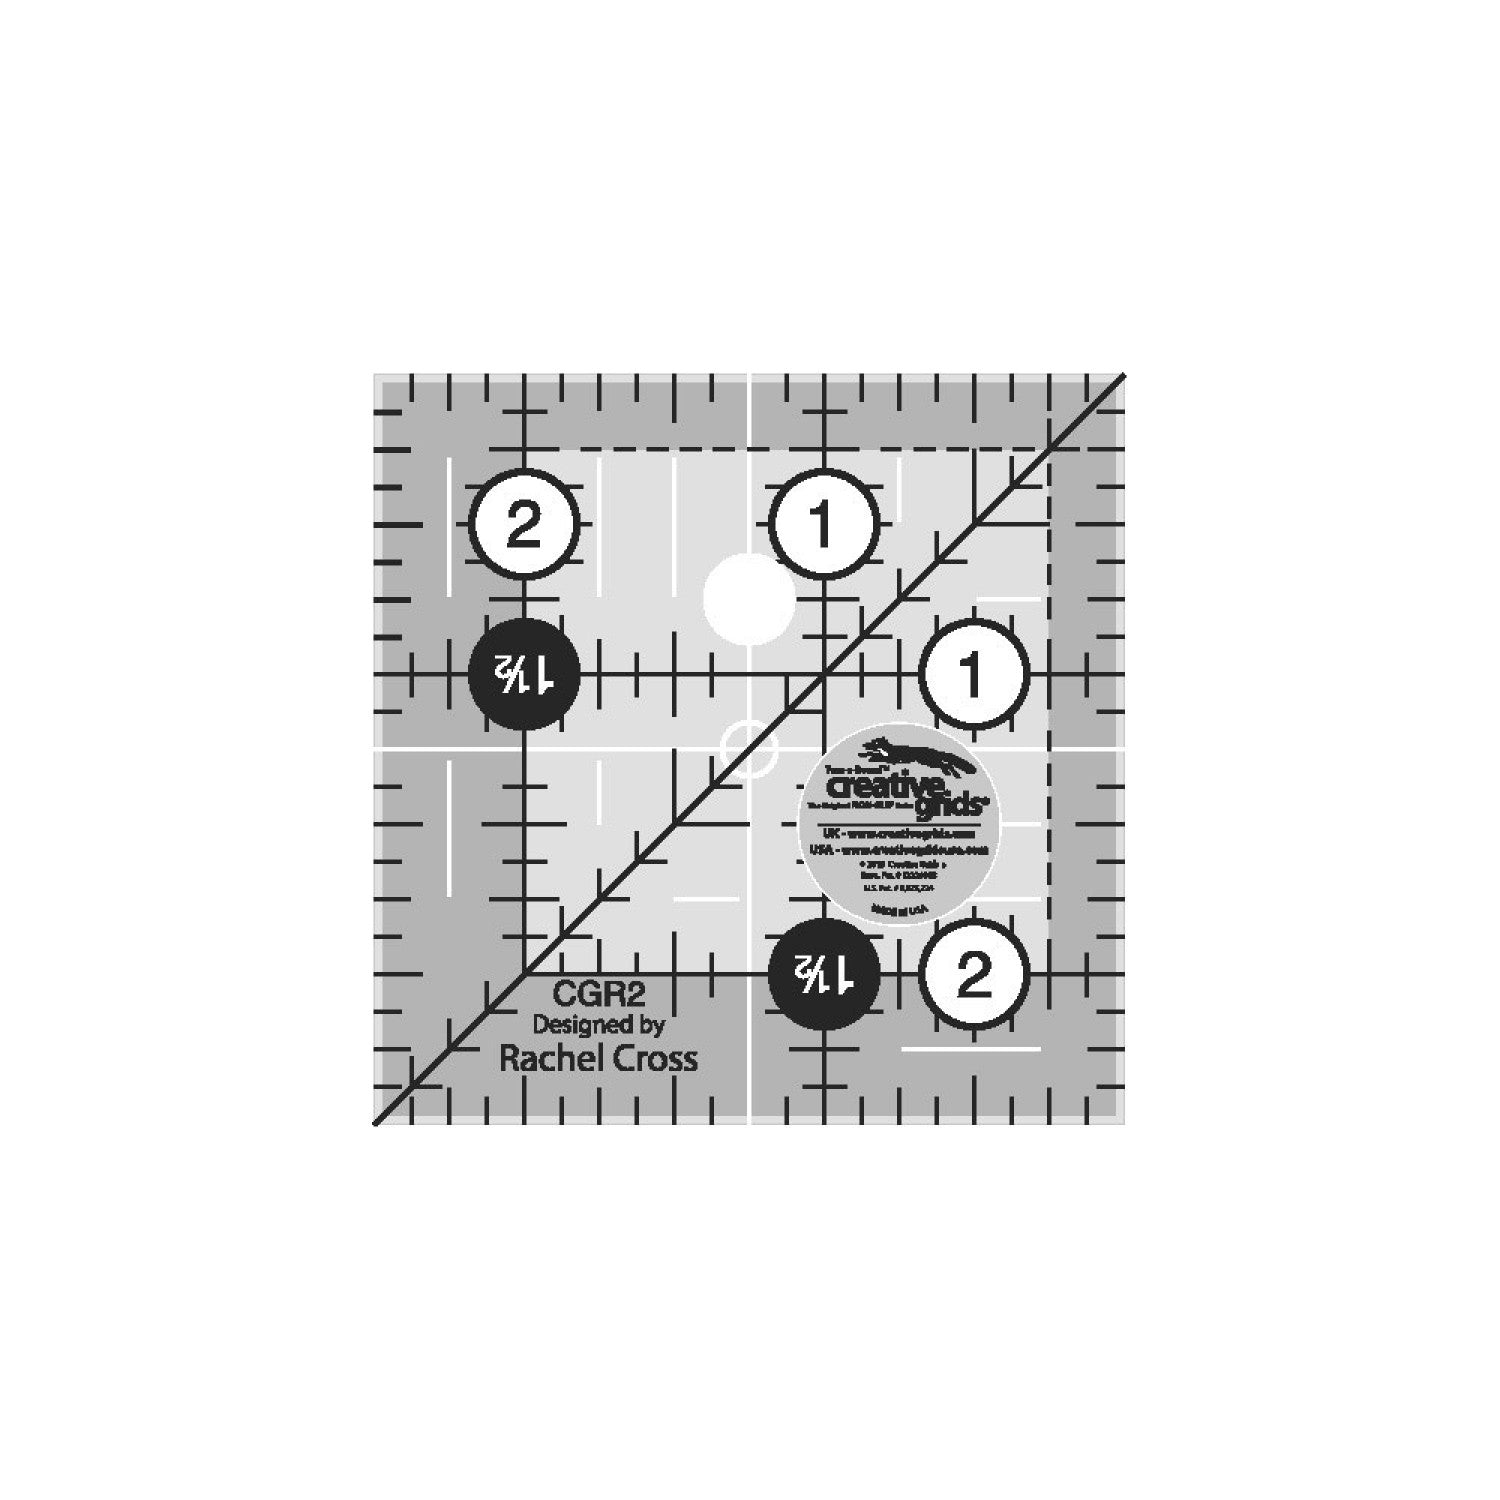 Creative Grids 2 and a half inch non-slip quilting square ruler